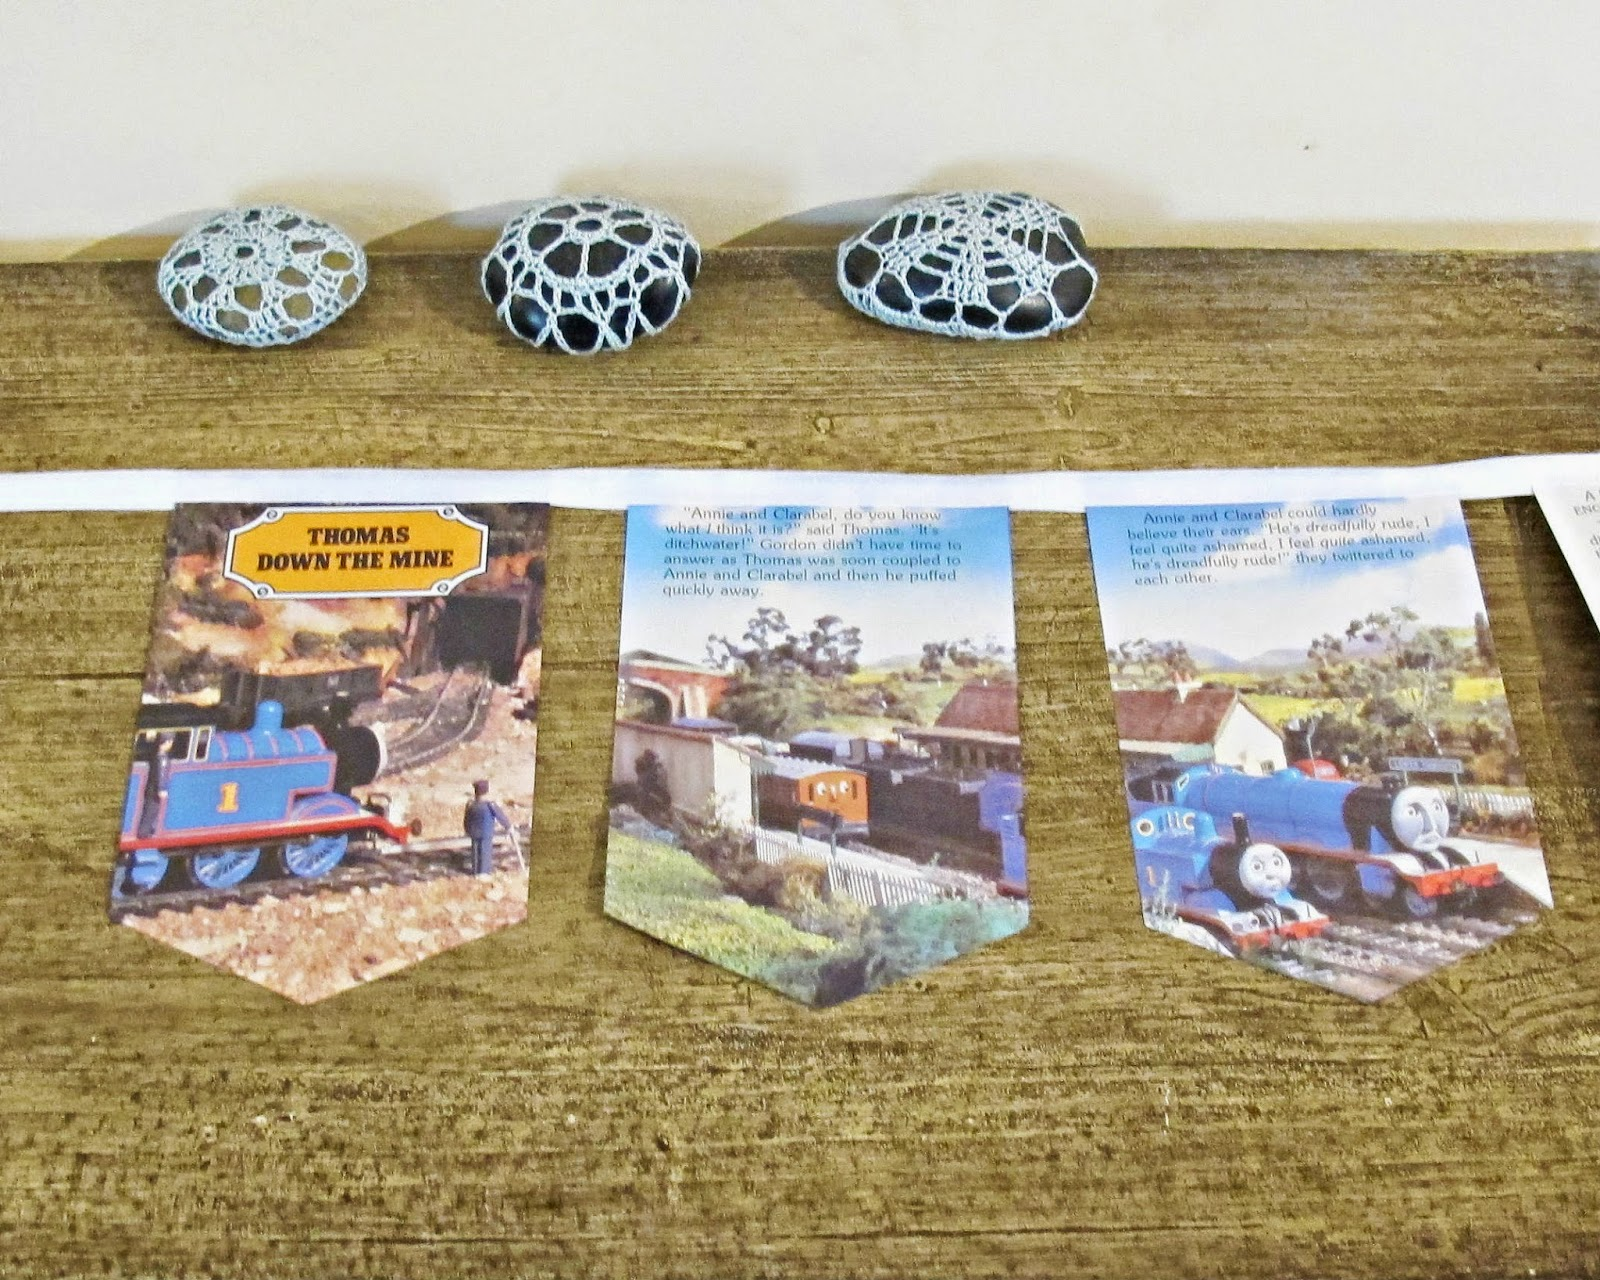 image thomas the tank engine bunting domum vindemia thomas down the mine trains boys children etsy madeit for sale